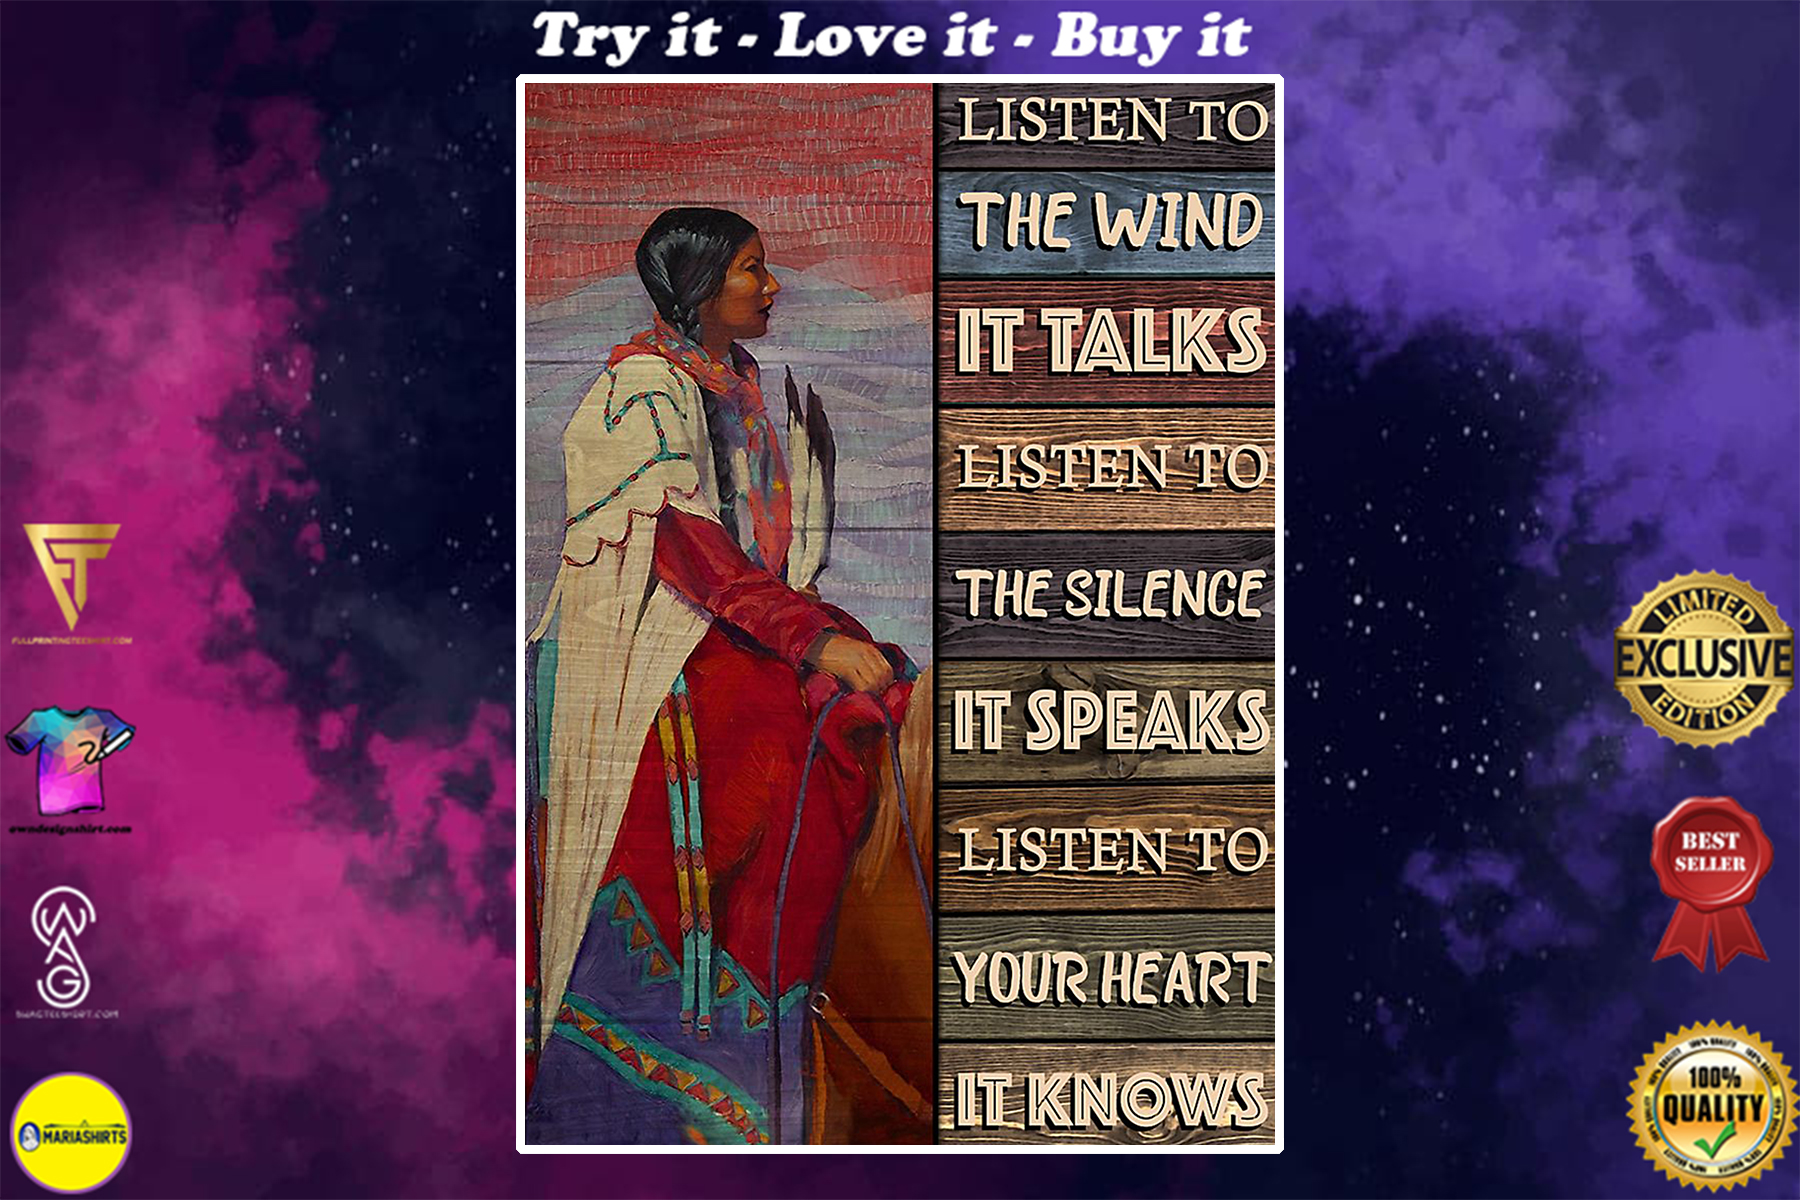 vintage native american girl listen to the wind it talks poster